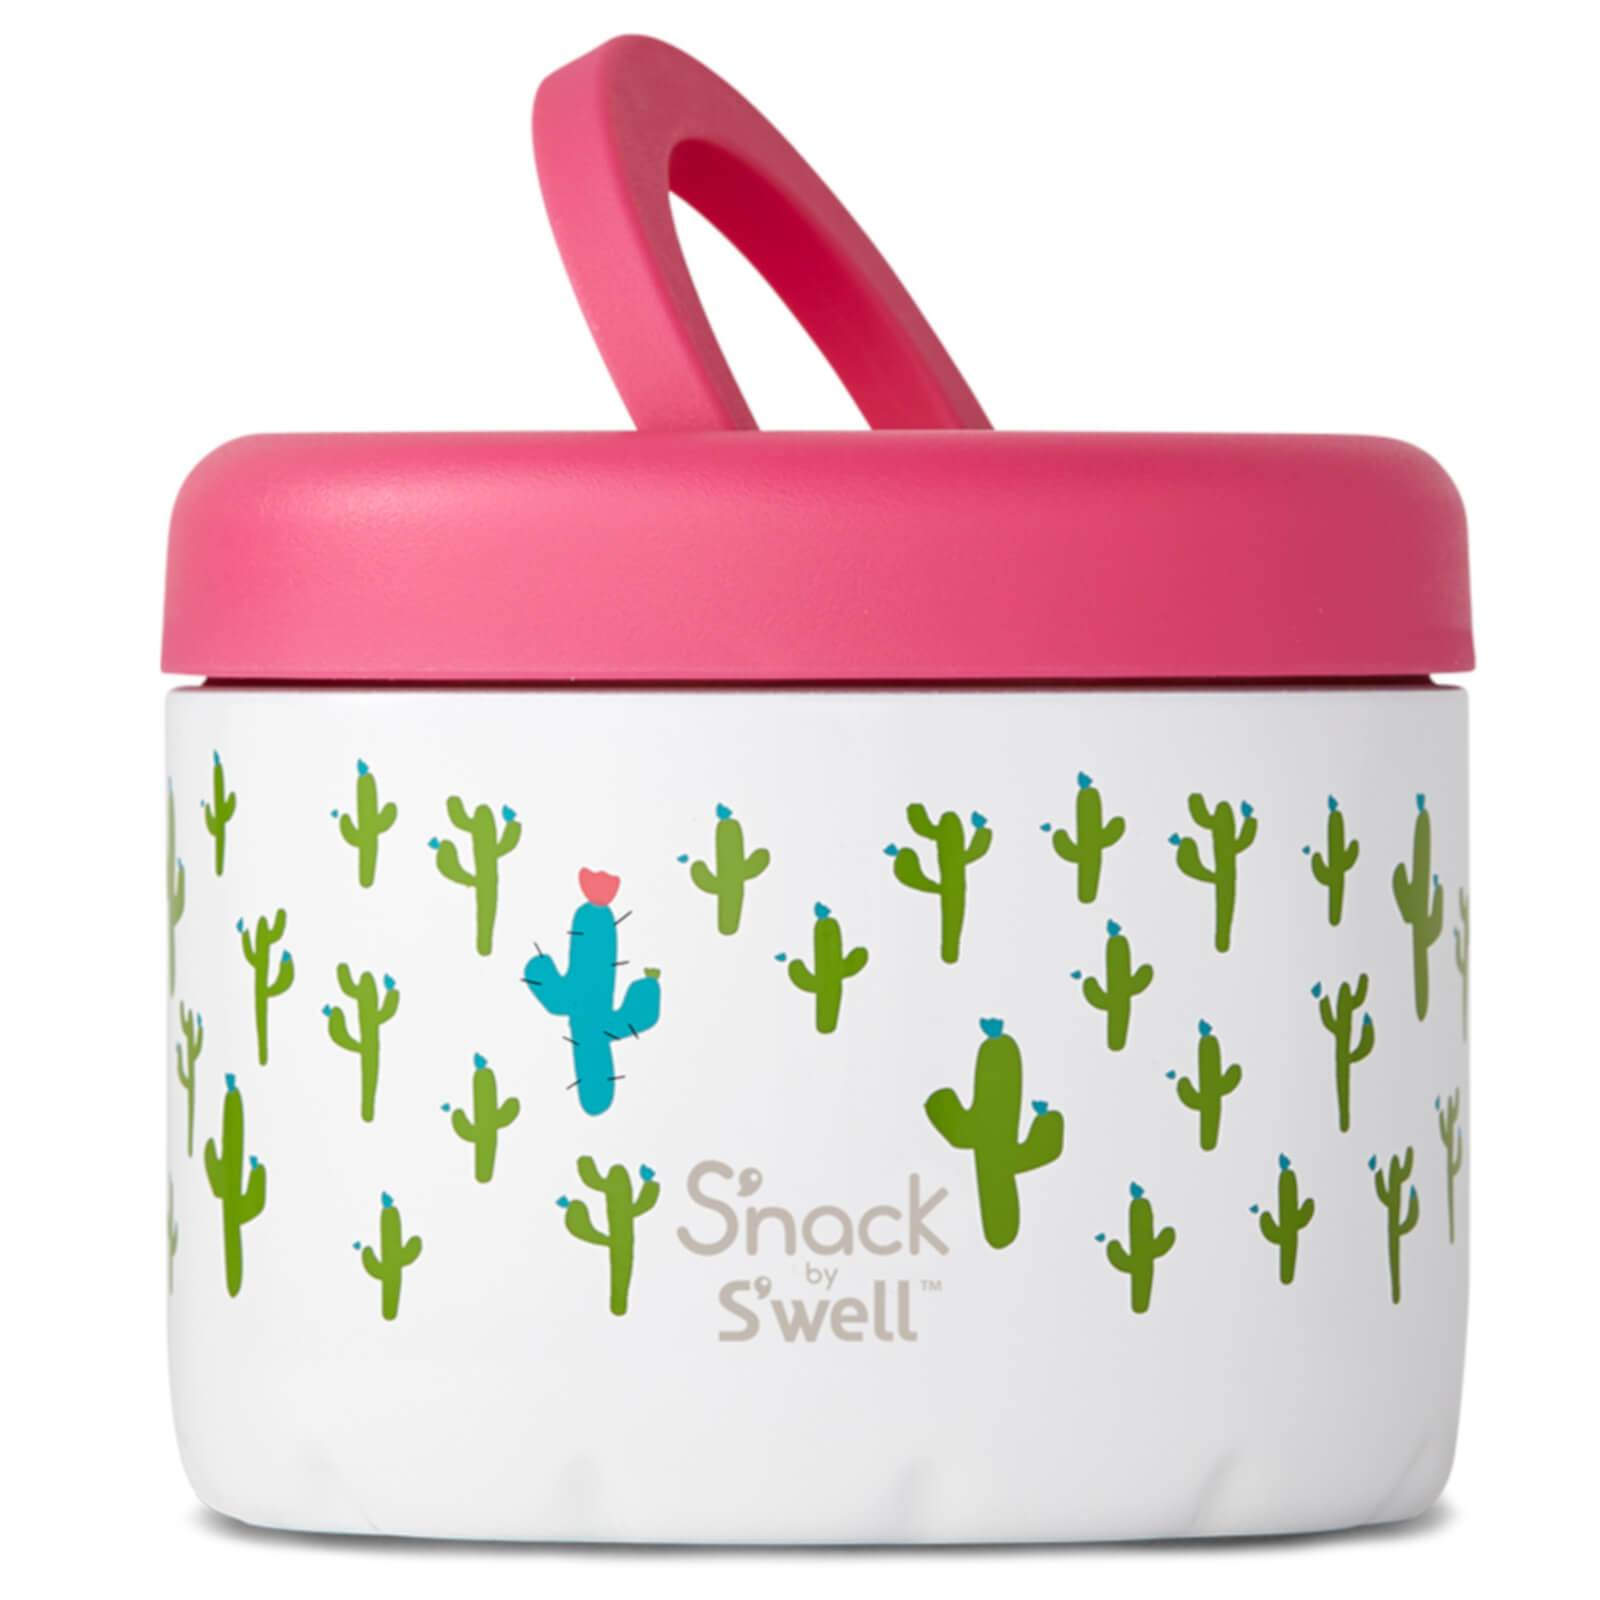 S'ip by S'well S'nack by S'well Looking Sharp Food Container - 24oz